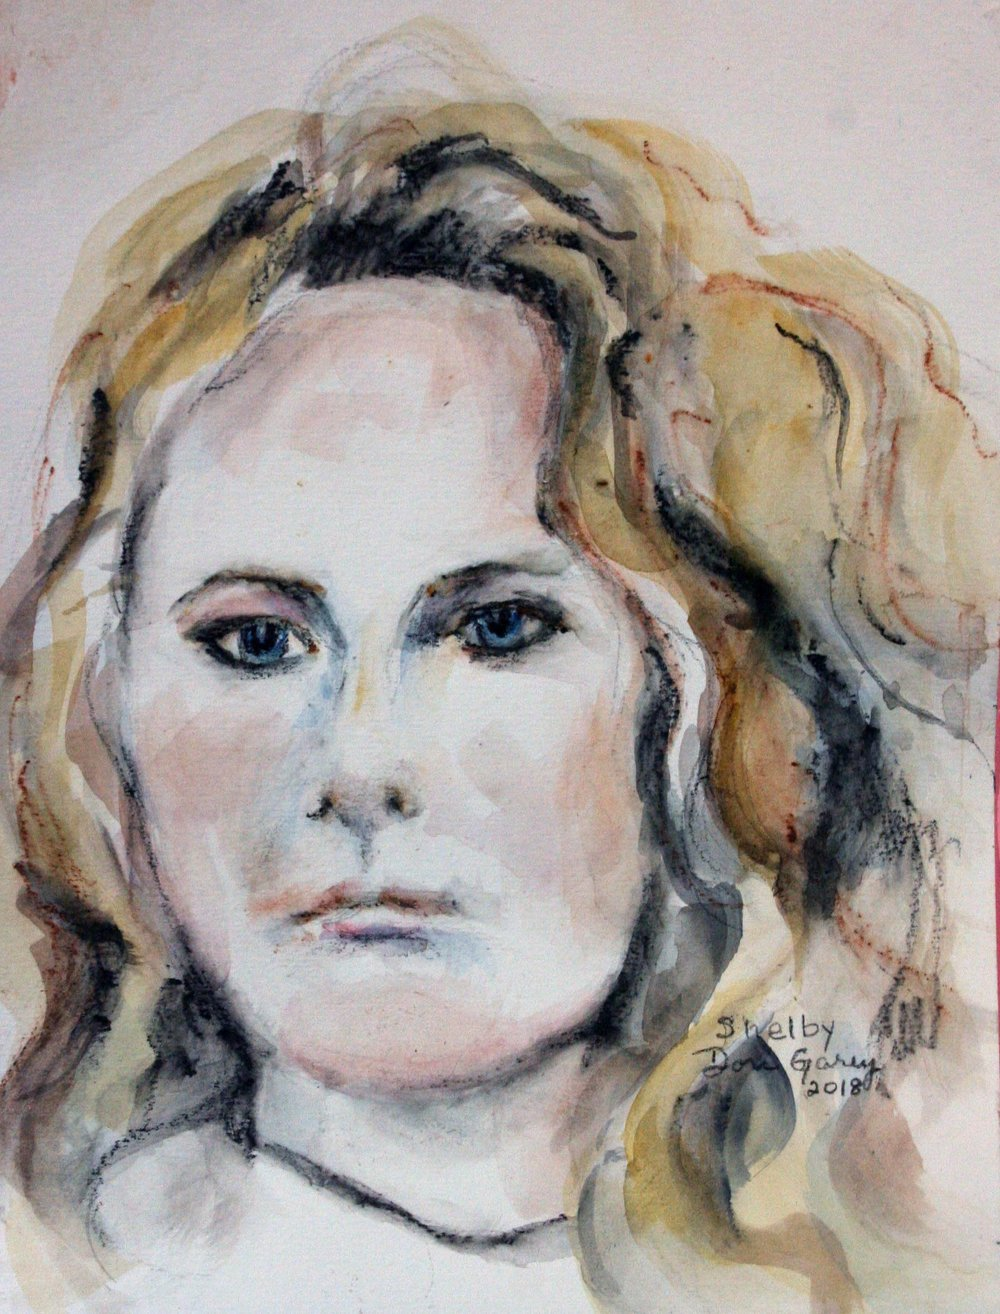 Dori Garey did this watercolor.